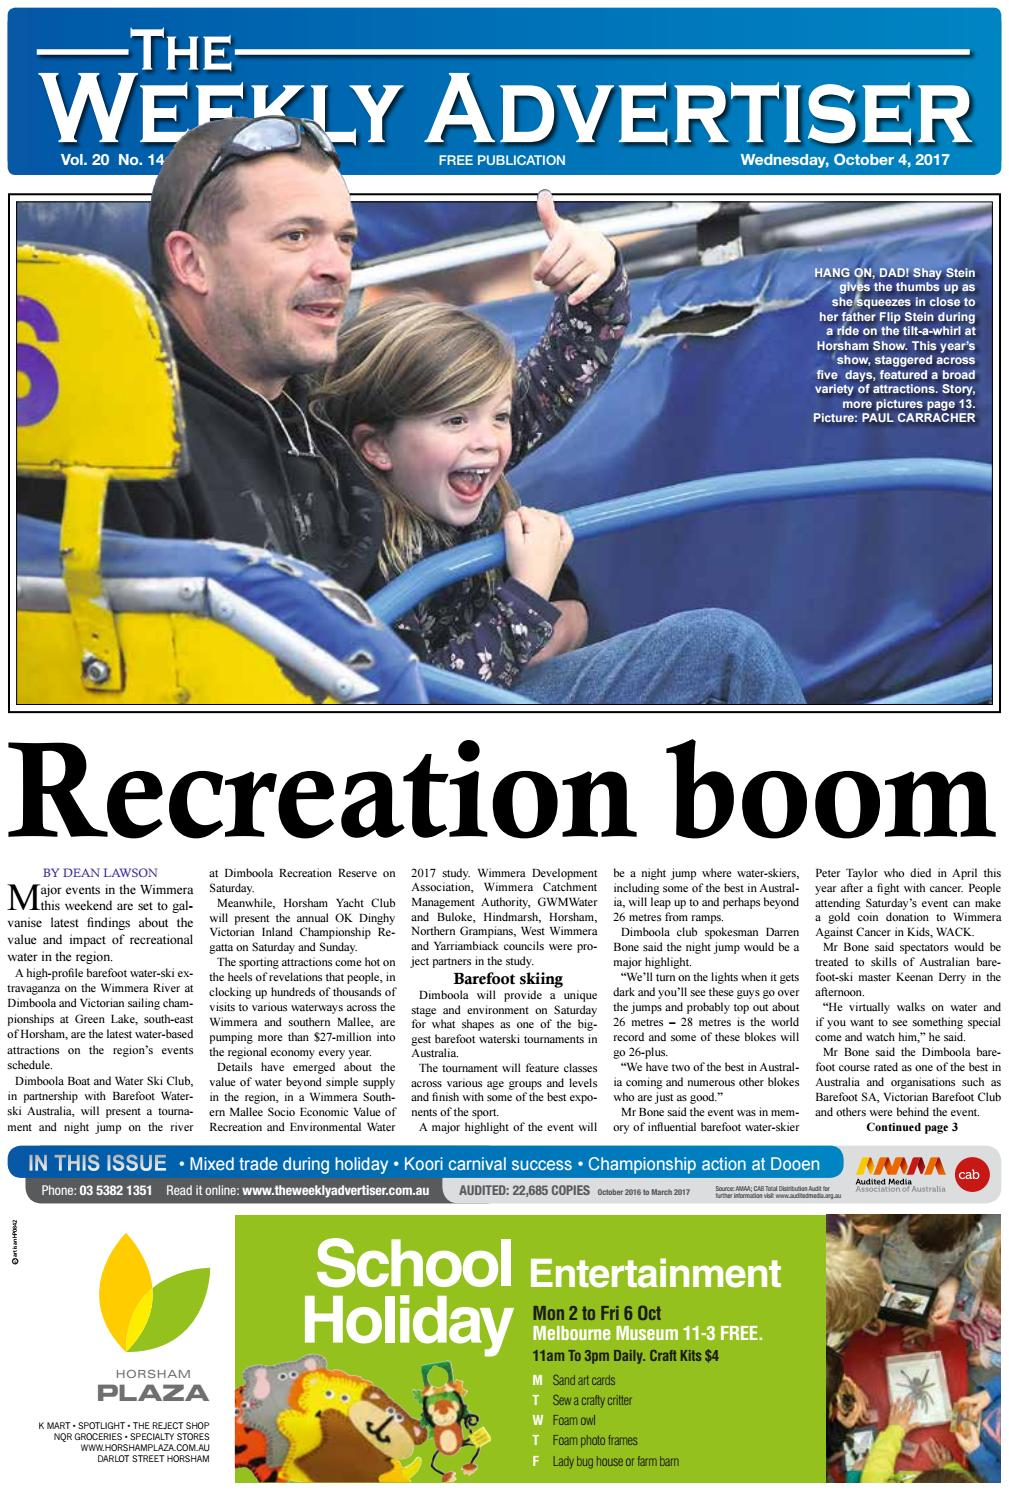 dde3055cc3196 The Weekly Advertiser - Wednesday